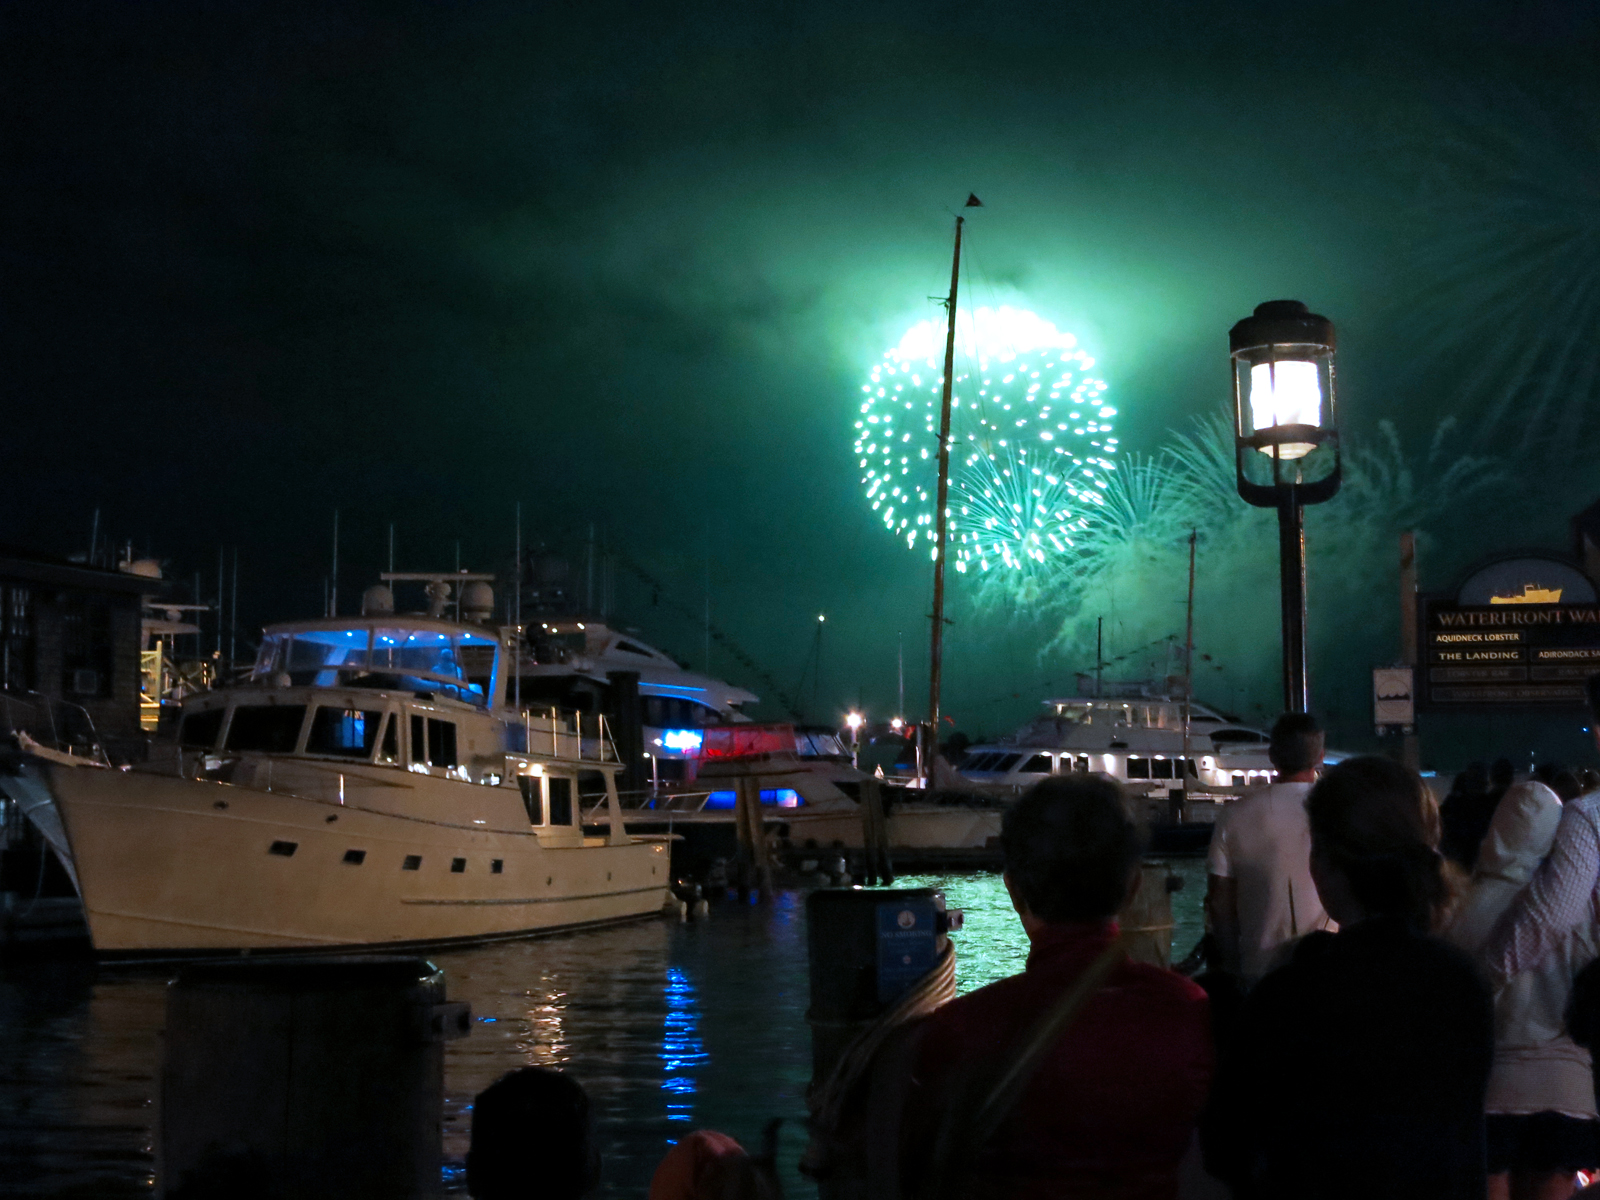 ROCKET'S RED GLARE OVER NEWPORT HARBOR - live. travel. adventure. bless. | Bright blue firework lighting up the sky over Newport Harbor in Newport, RI during the Independence Day fireworks display. Happy 4th of July!